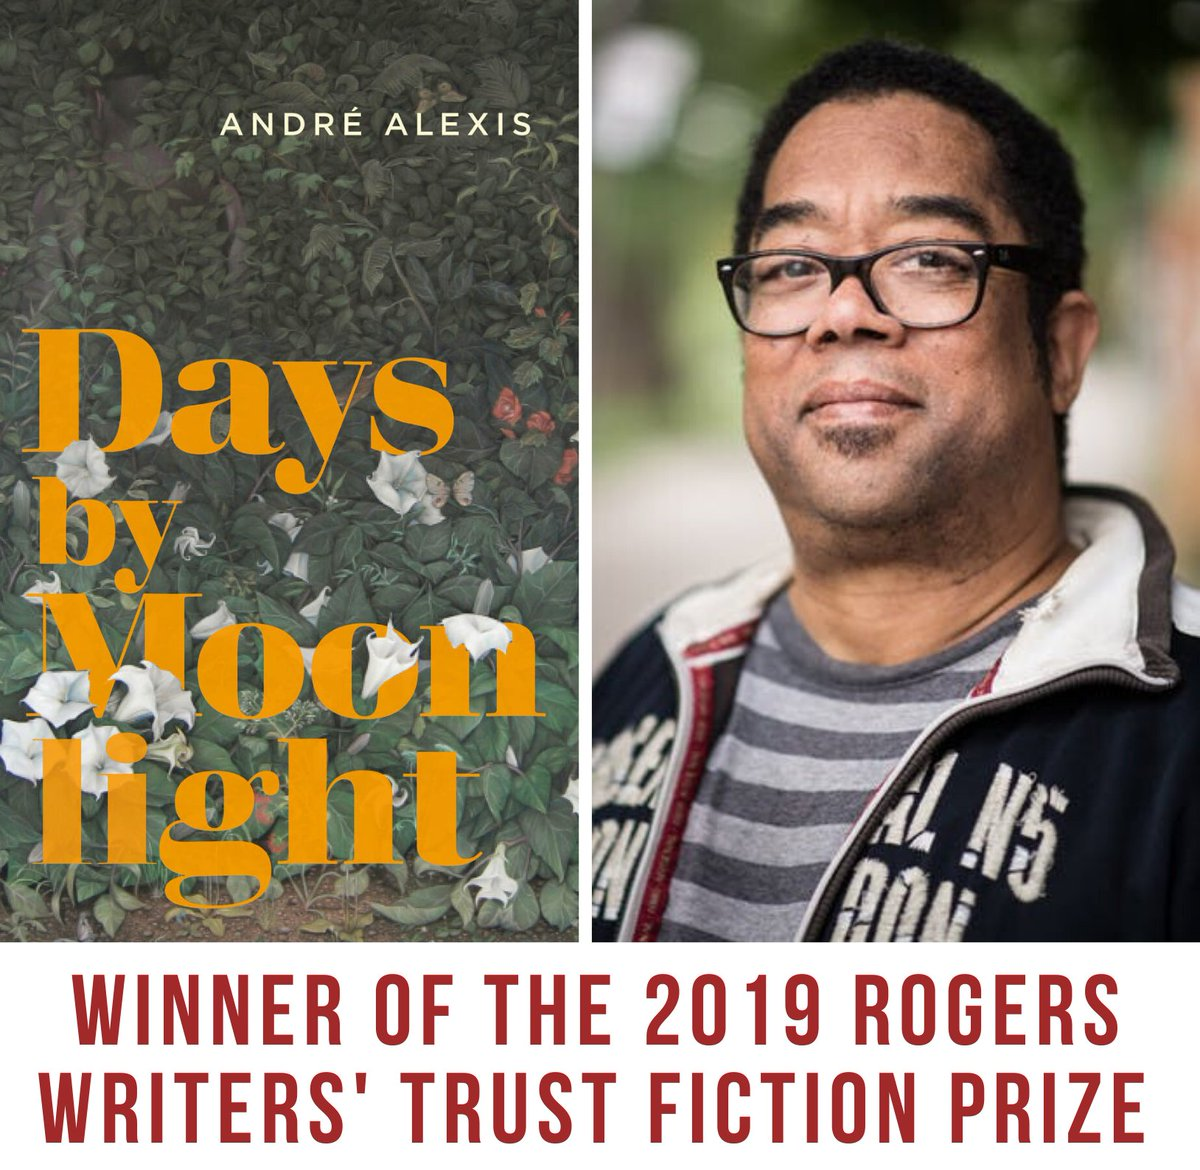 Congratulations to @coachhousebooks and André Alexis who won the 2019 Rogers Writers' Trust Fiction Prize for Days by Moonlight!#RogersFiction